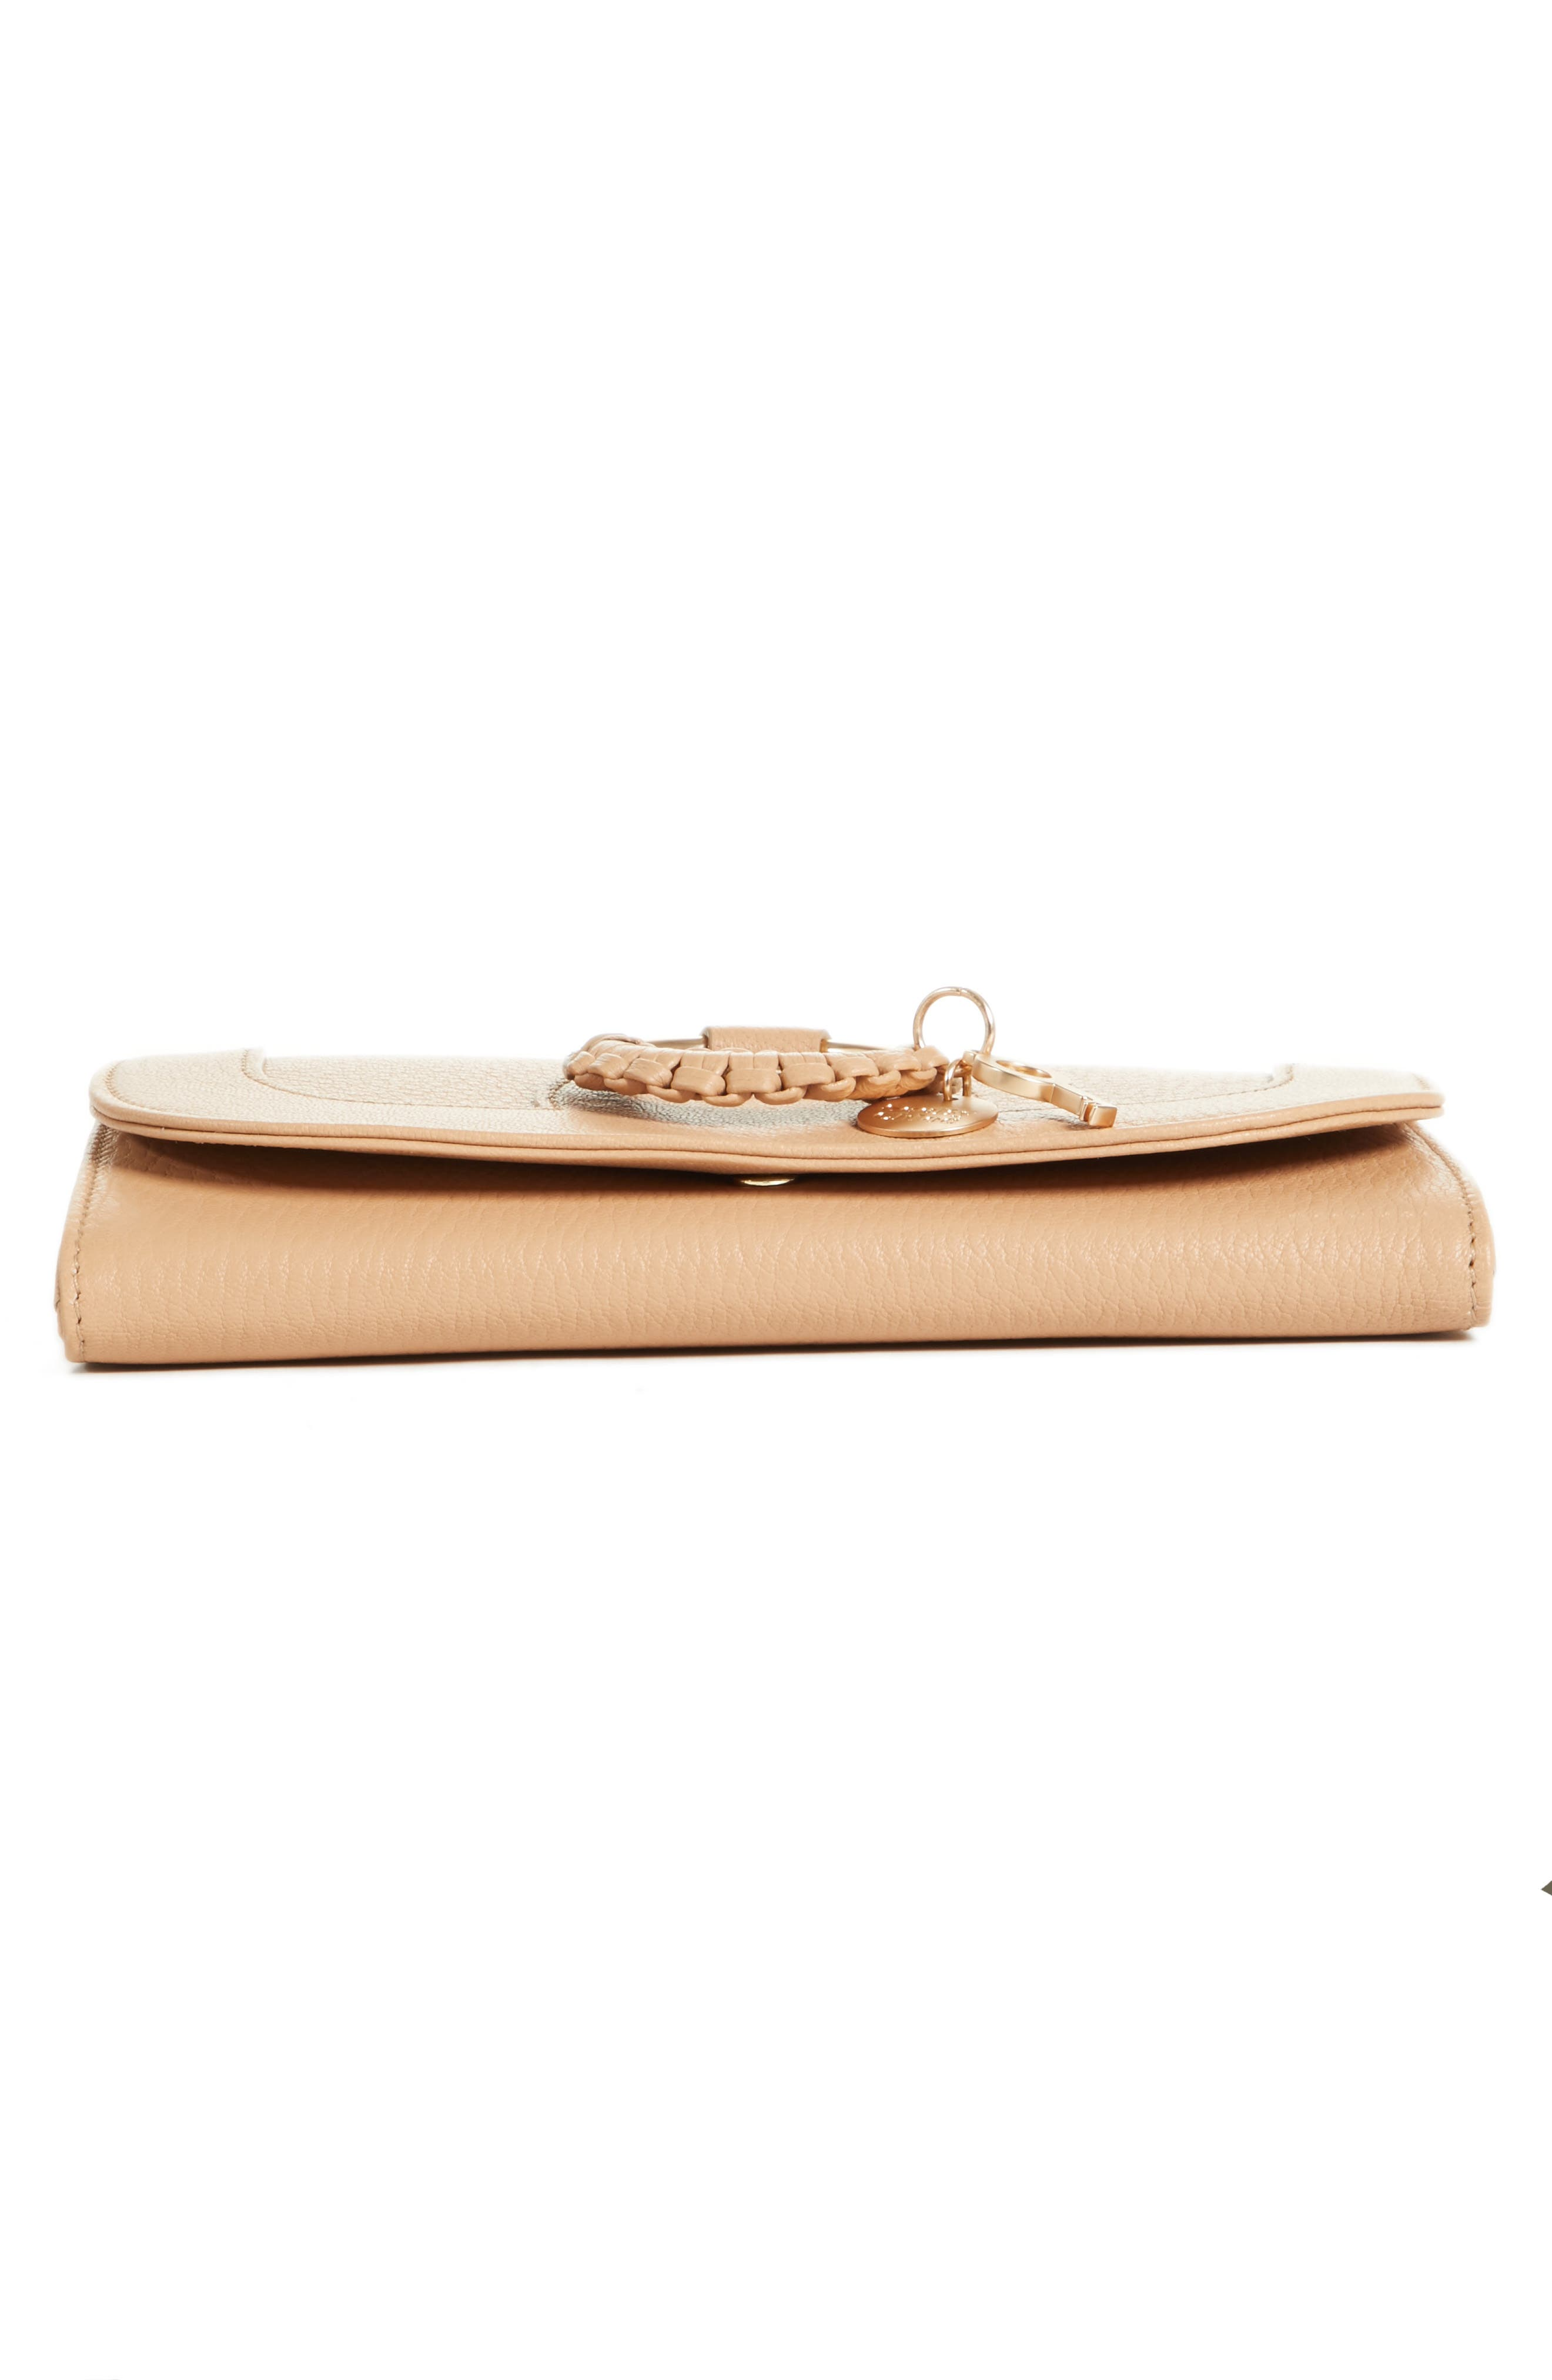 Hana Large Leather Wallet,                             Alternate thumbnail 6, color,                             Blush Nude